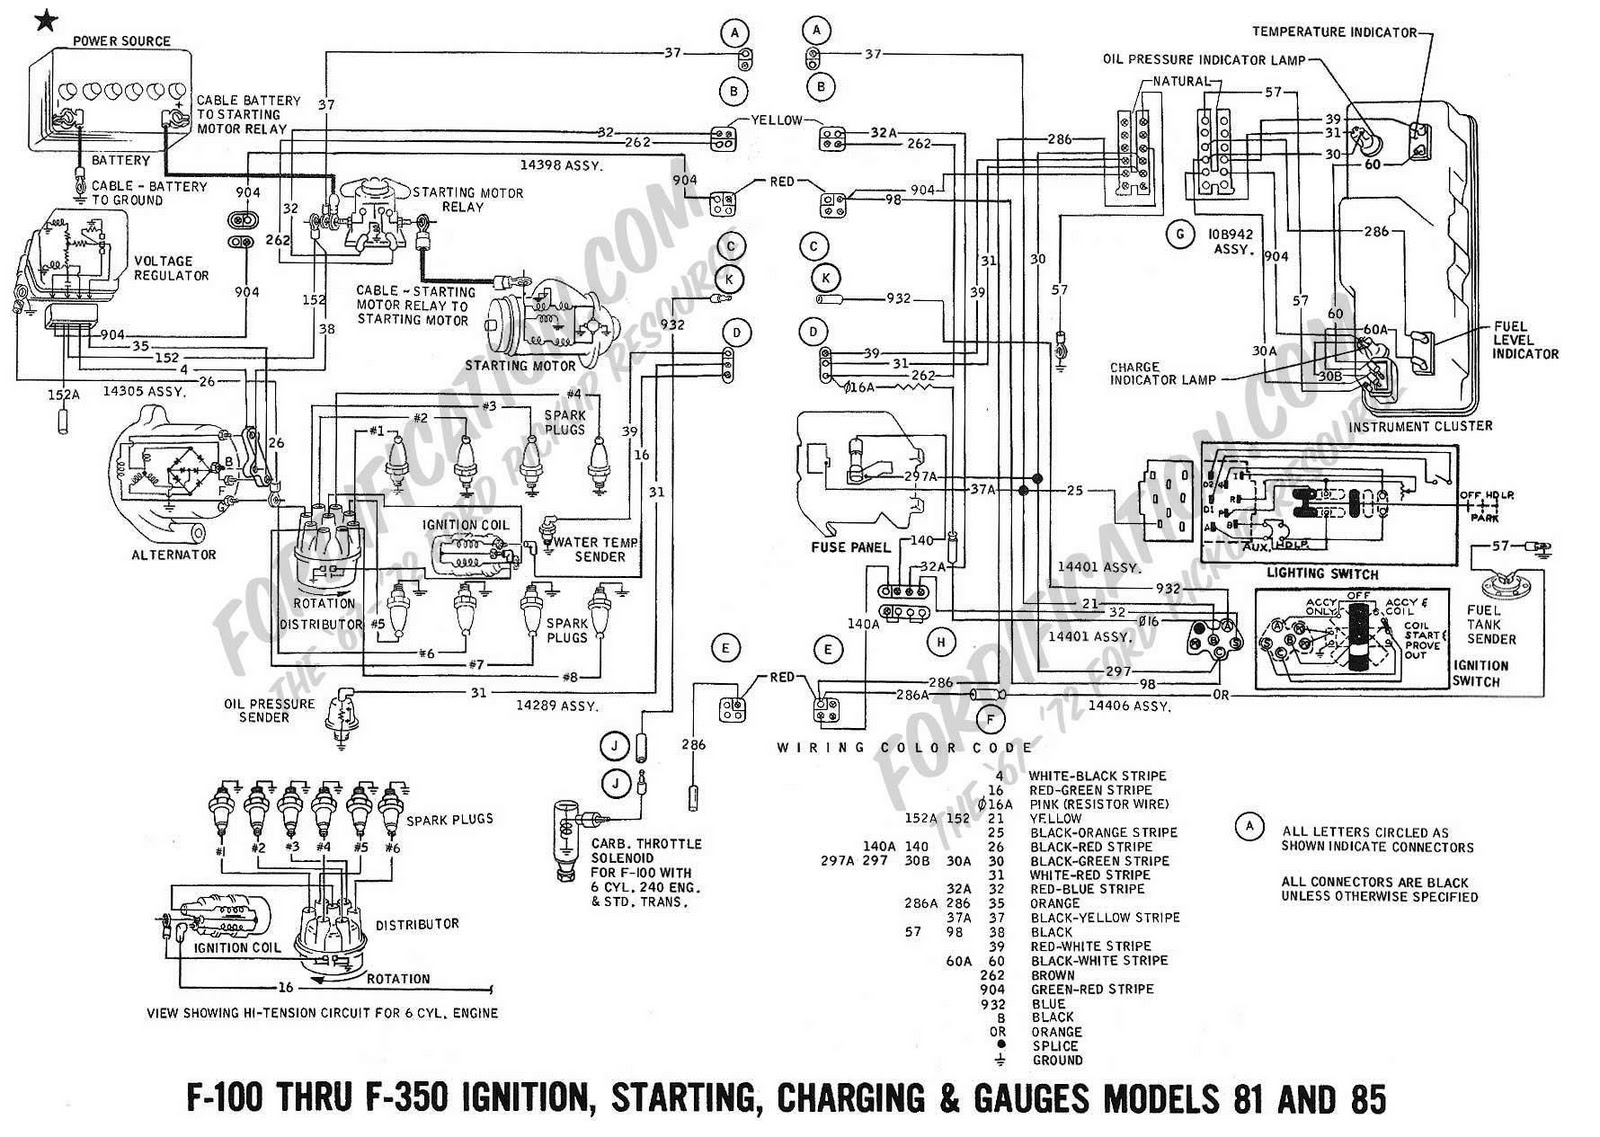 1957 ford wiring harness diagram database reg 1977 ford truck wiring diagrams 1957 ford thunderbird underhood [ 1600 x 1137 Pixel ]